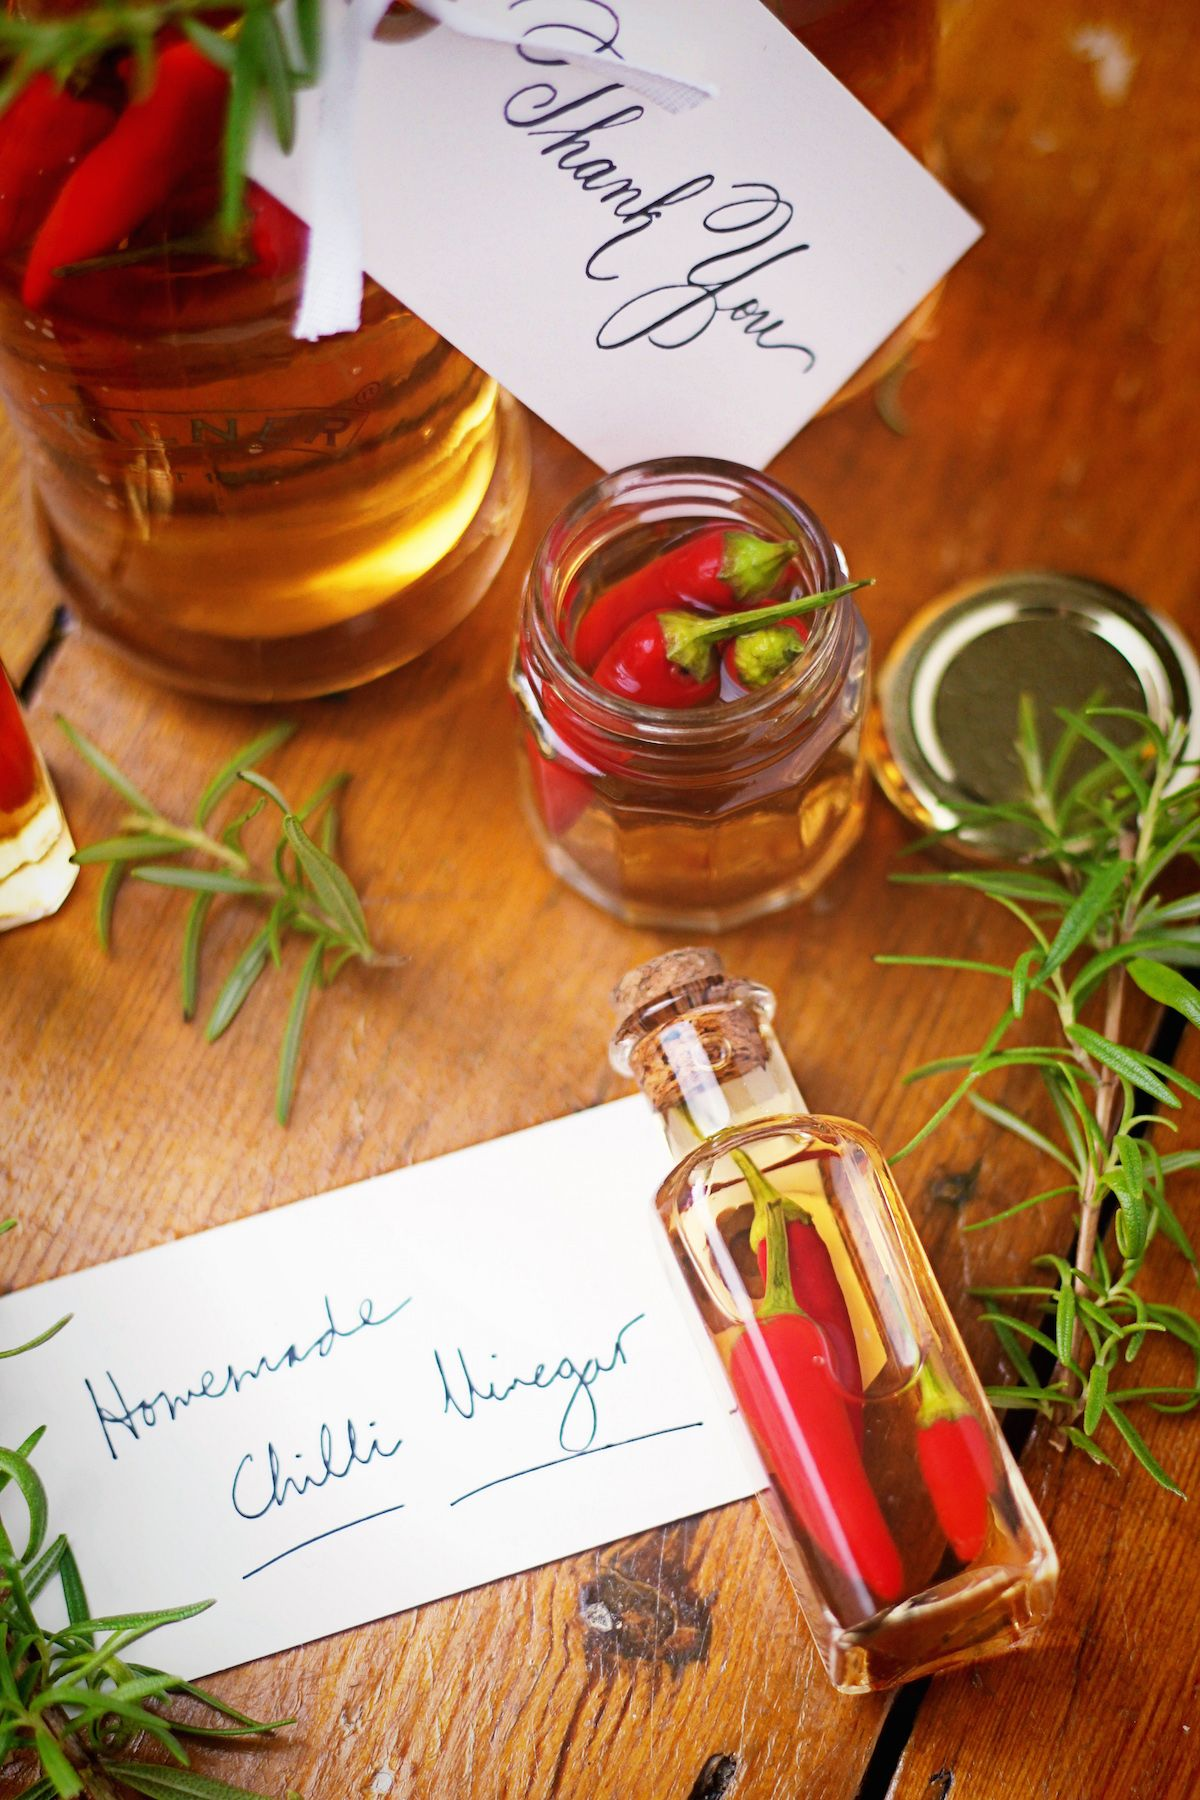 Hostess Gifts Ideas For Dinner Party Part - 44: This Homemade Chilli Vinegar Is The Perfect Hostess Gift To Bring To A  Summer Dinner Party Or BBQ.